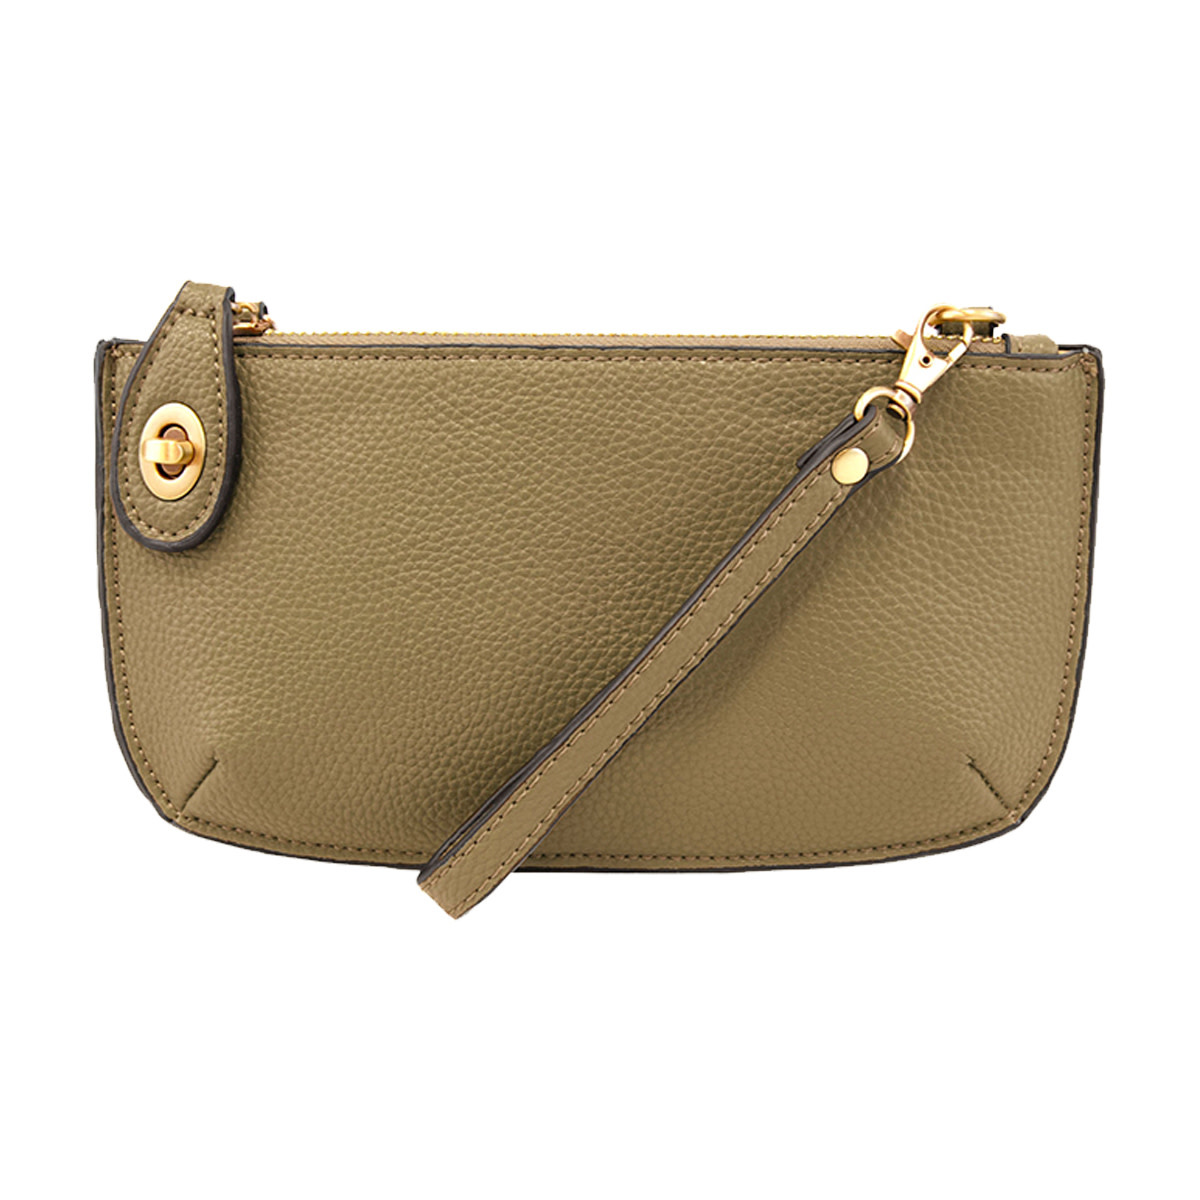 Joy Susan Joy Susan Mini Crossbody Wristlet Clutch Army Green